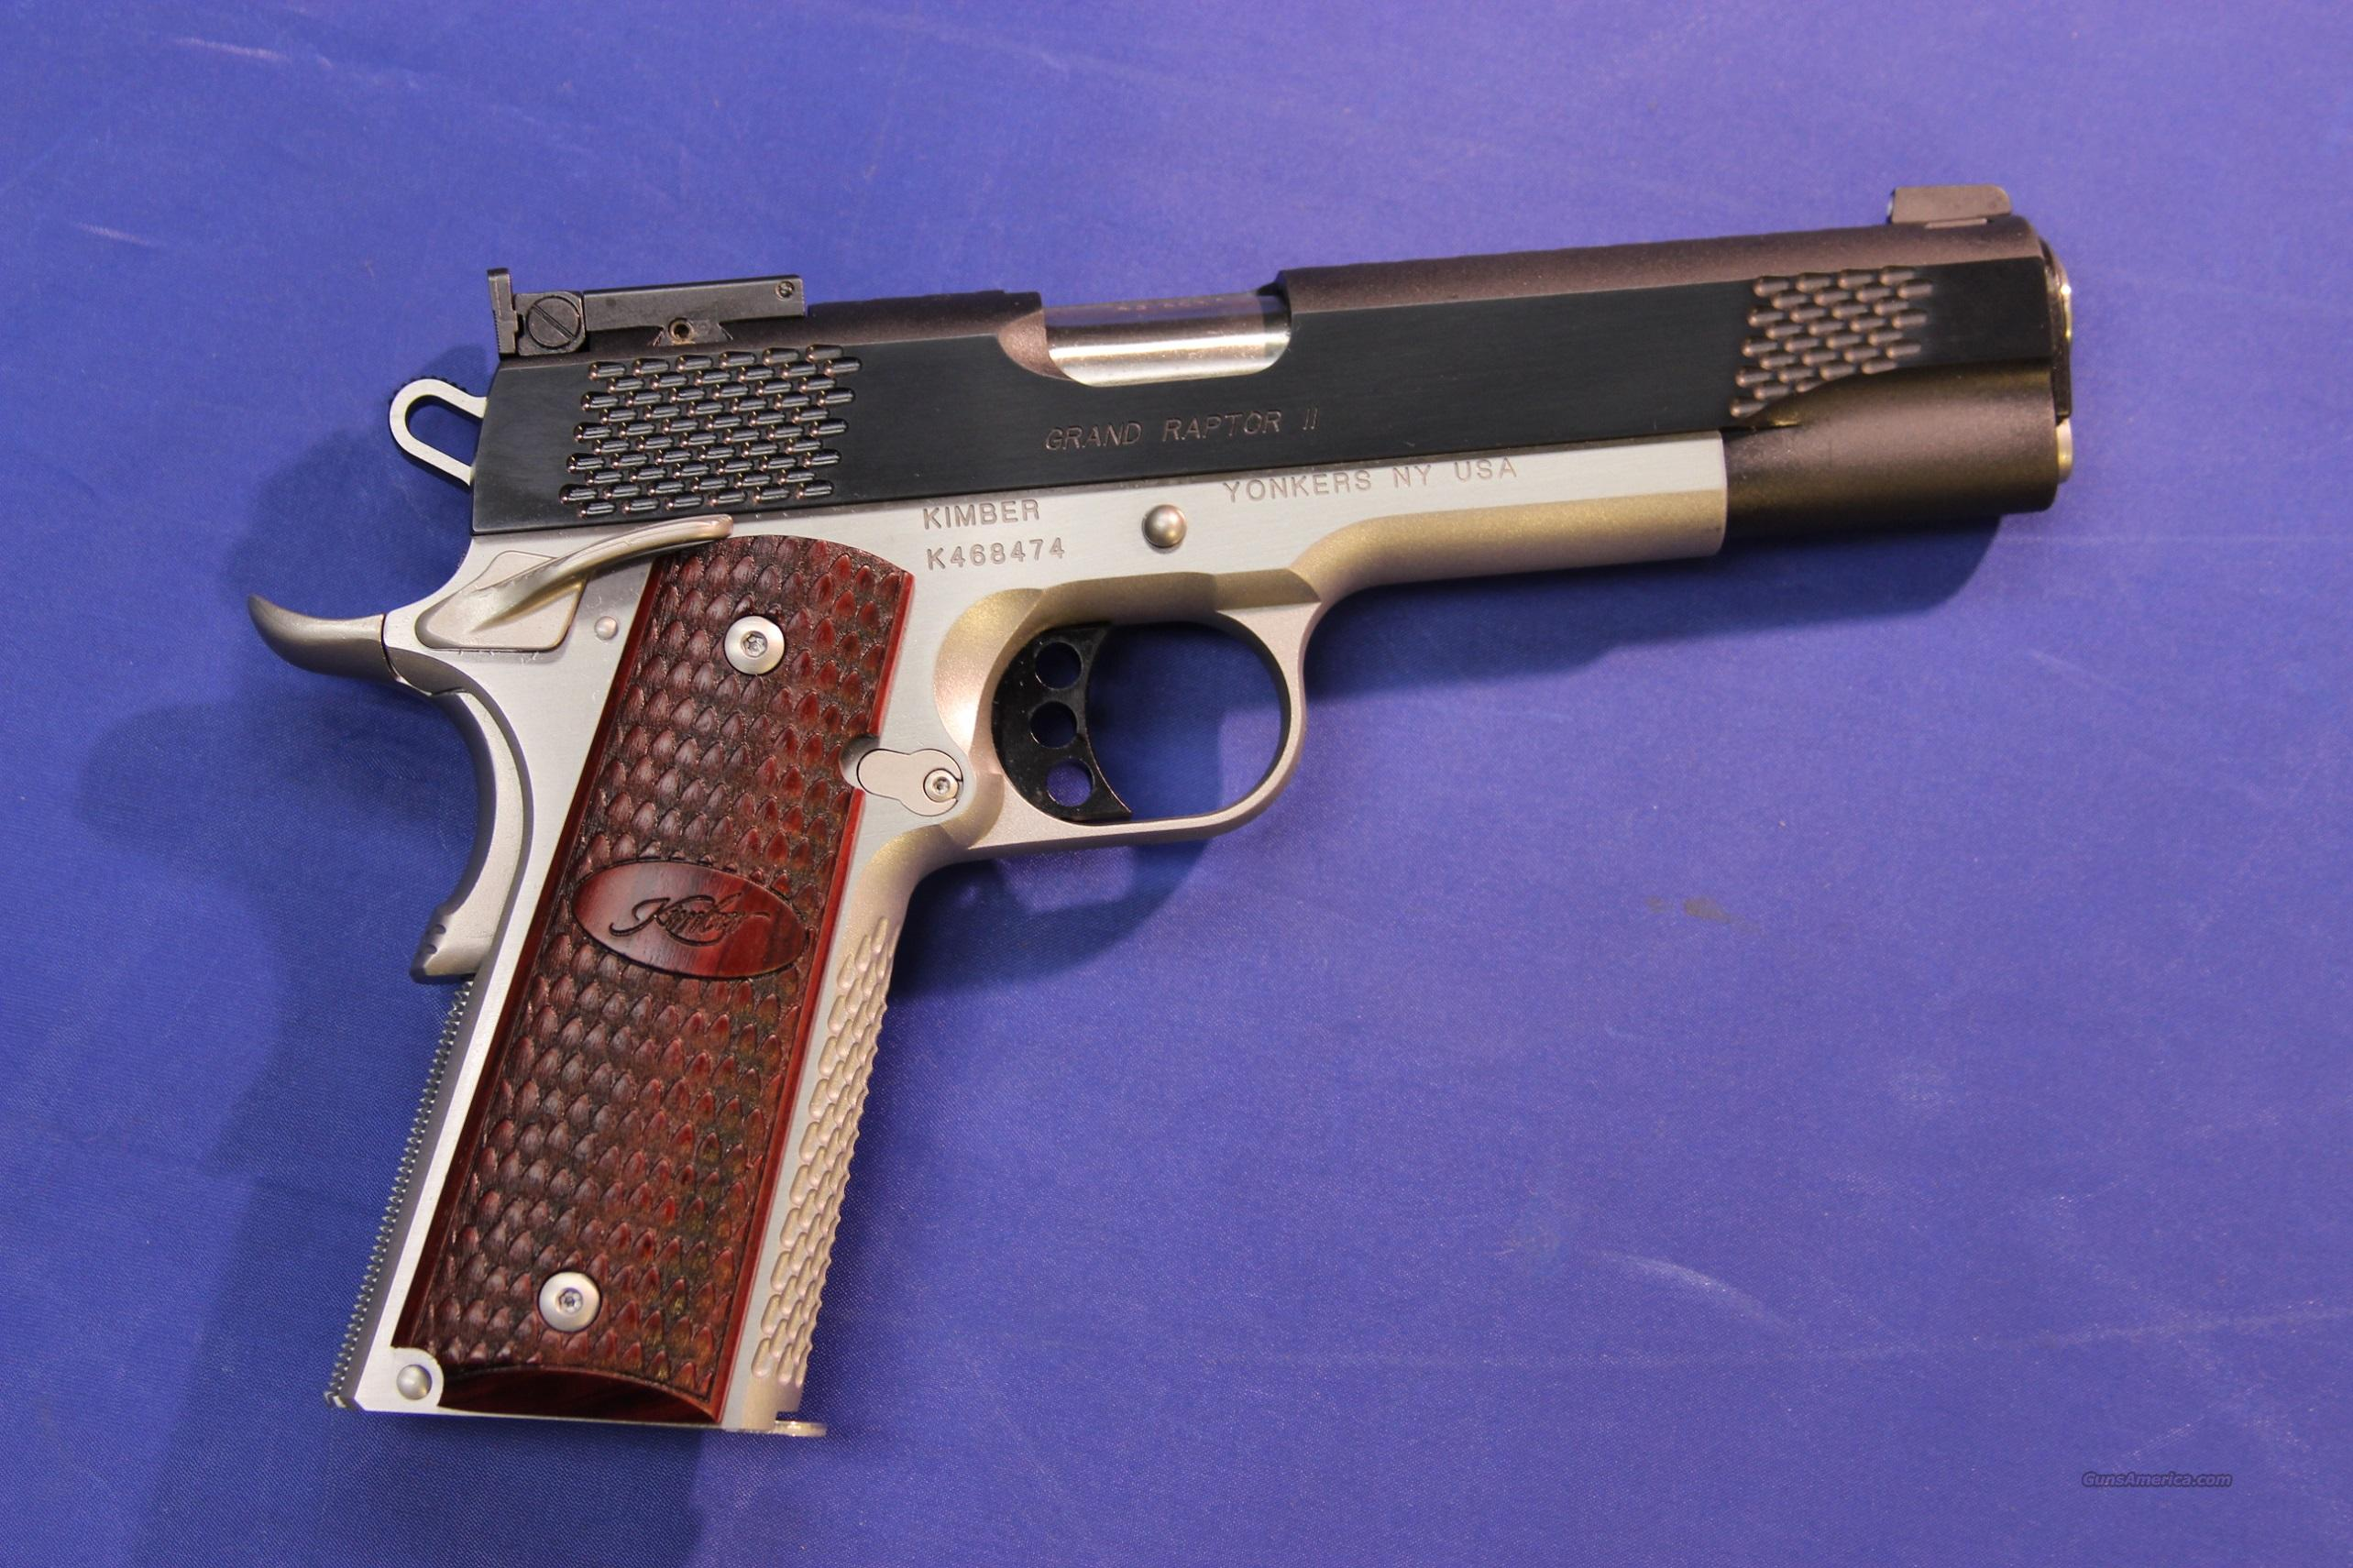 KIMBER 1911 GRAND RAPTOR II .45 ACP - NEW!  Guns > Pistols > Kimber of America Pistols